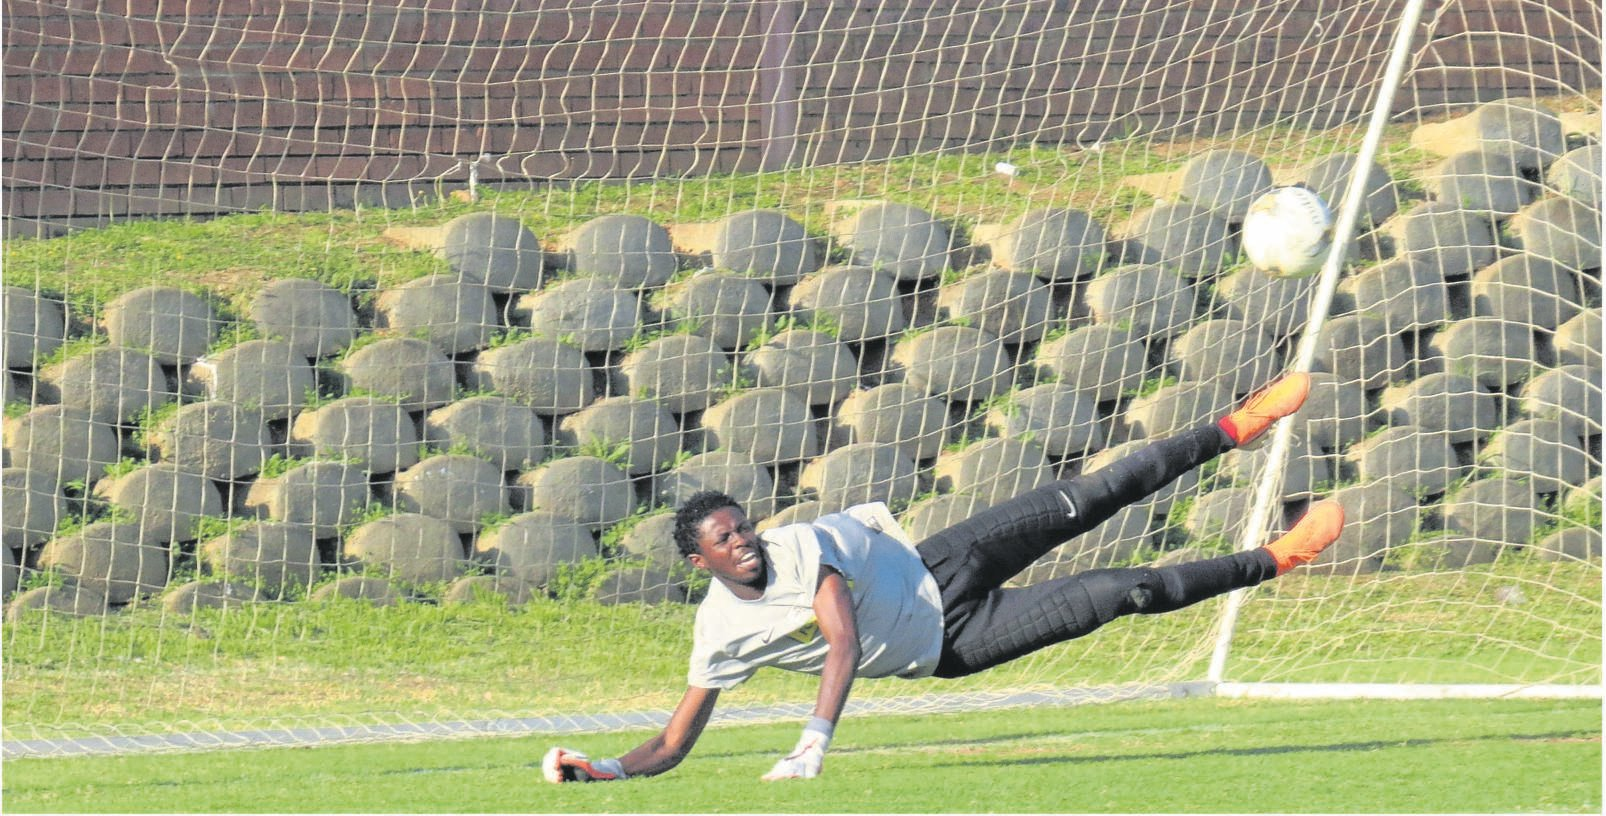 The Central University of Technology's (CUT) goalkeeper, Reatile Mafa, makes an acrobatic save to deny the Kovsie side a goal in their Nedbank Cup preliminary knockout game in Boemfontein on Saturday (21/09).Photo: Teboho Setena